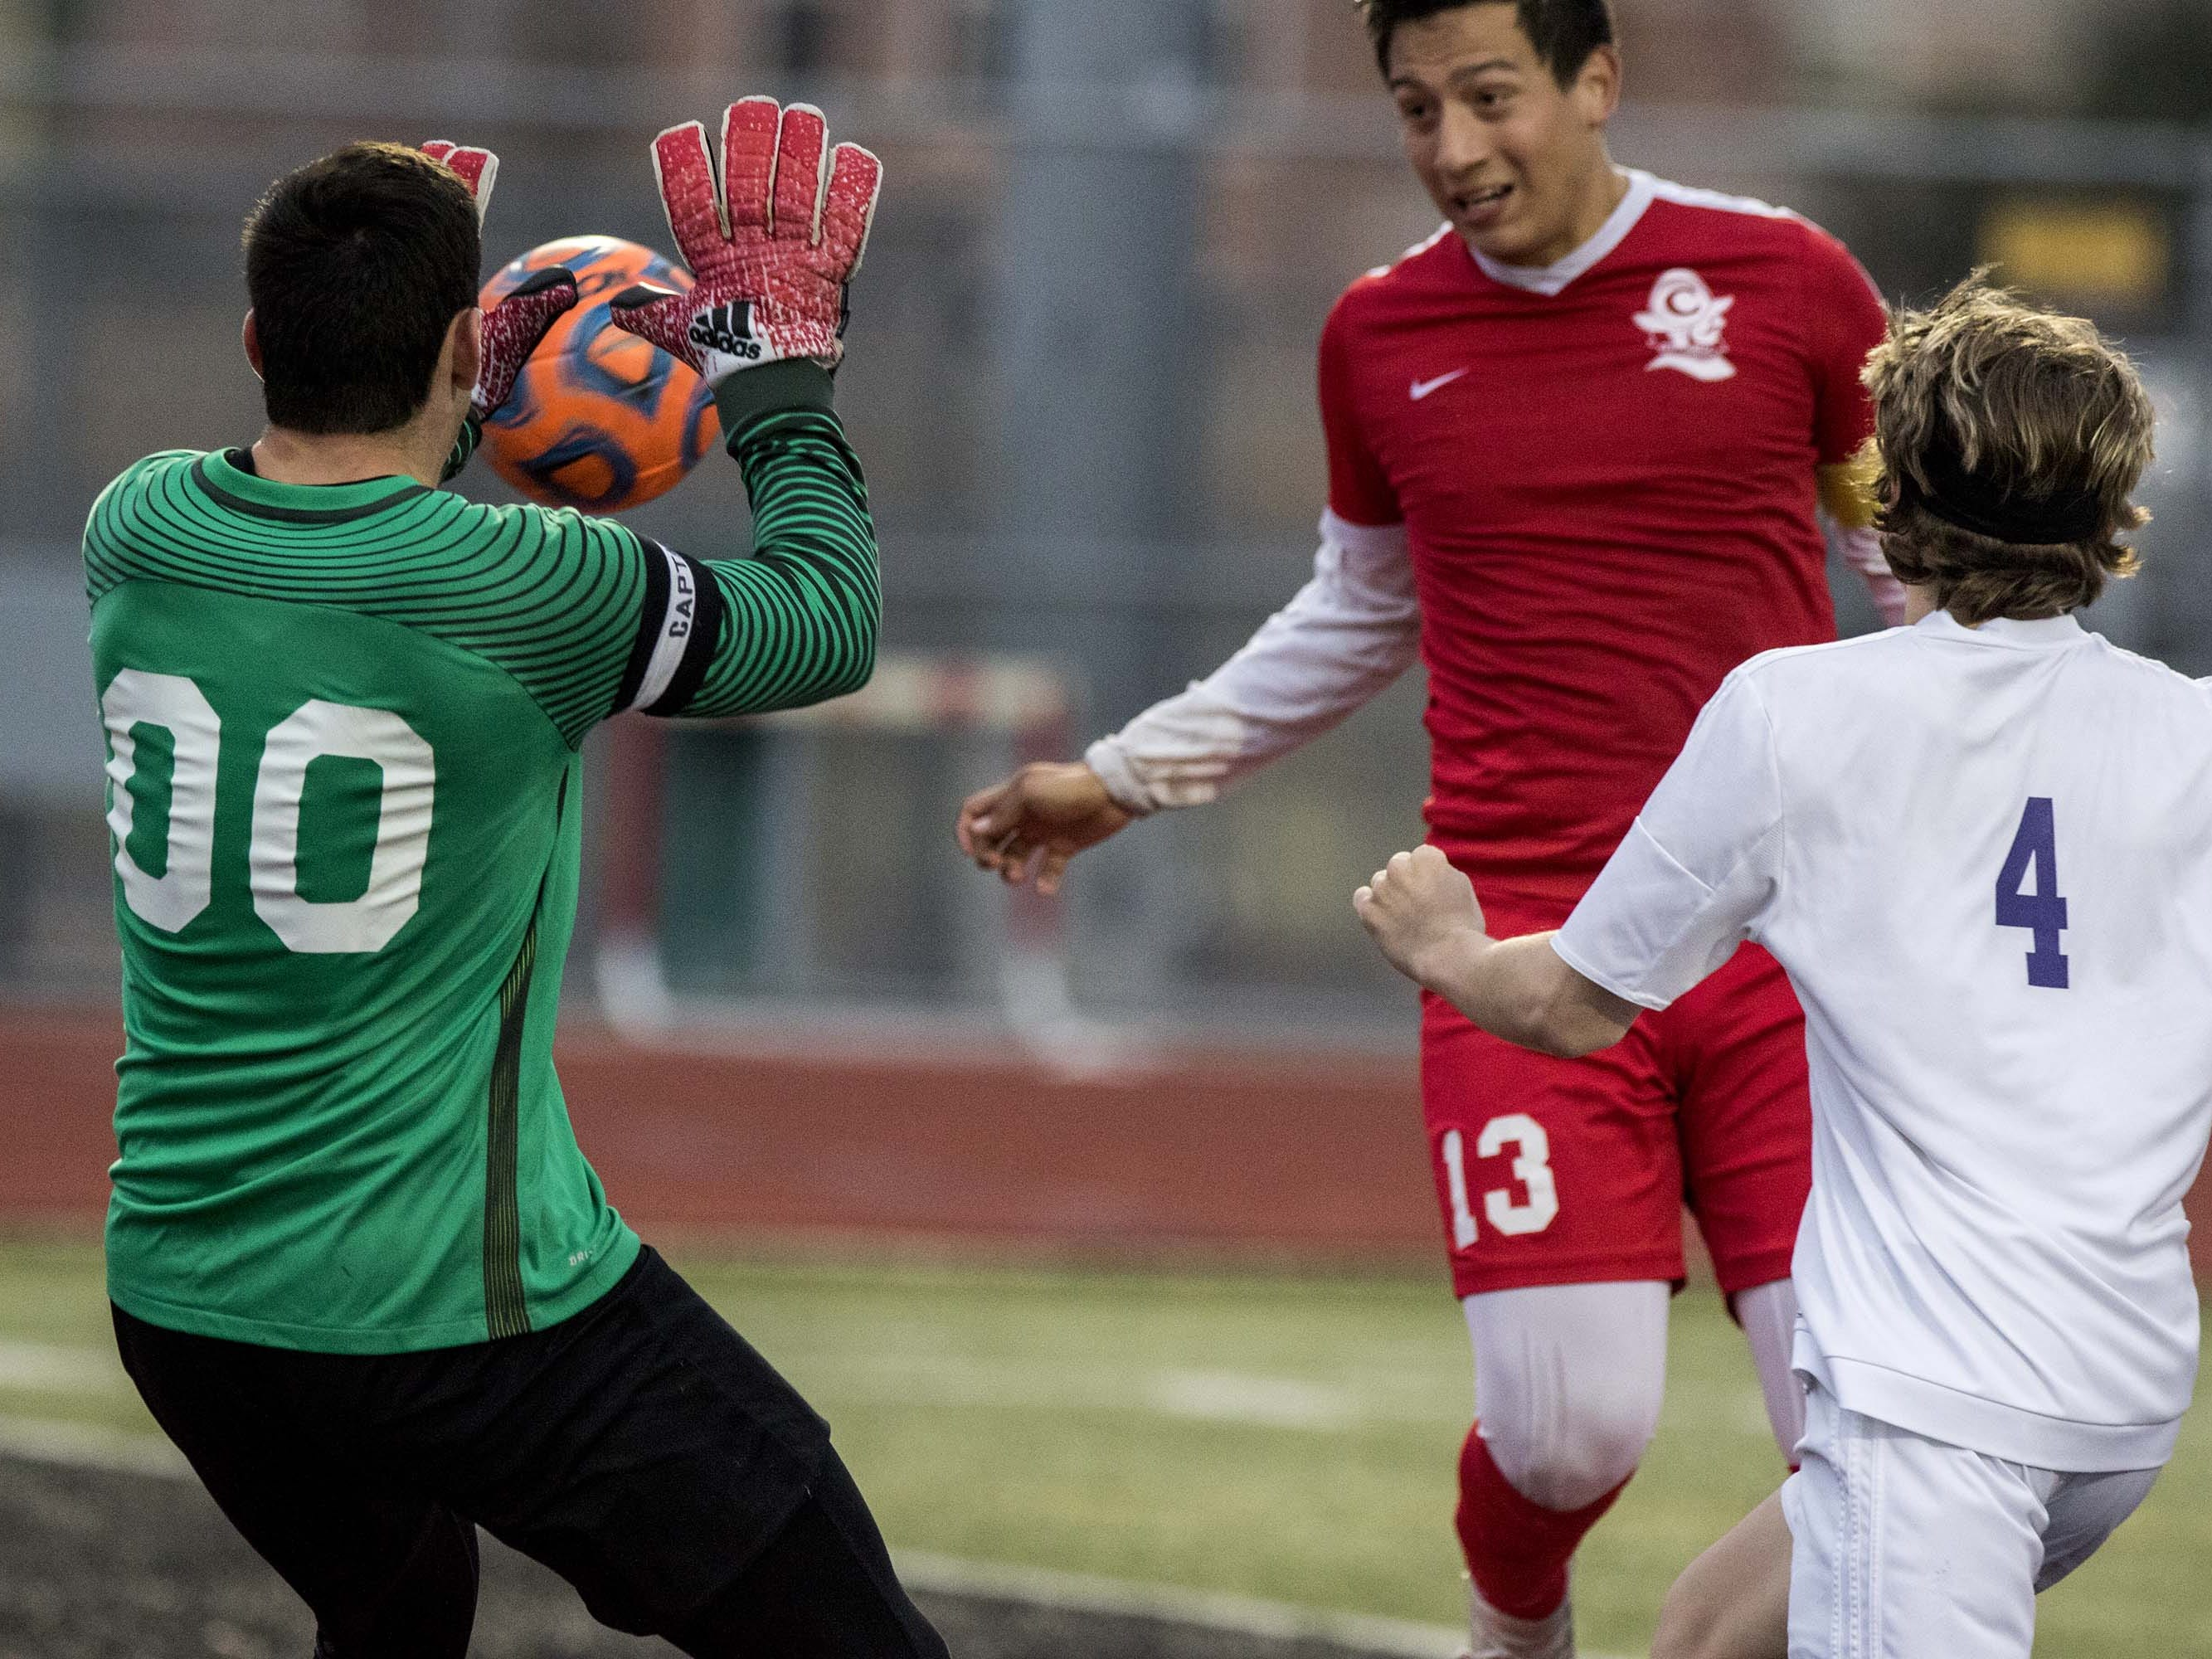 Northwest Christian goalie Ben Ogan (0) couldn't get to the head ball from Coronado's Adan Valle (13) as Valle's scores the Dons' first goal during the 3A State Championship game in Chandler, Friday, Feb .15,  2019.